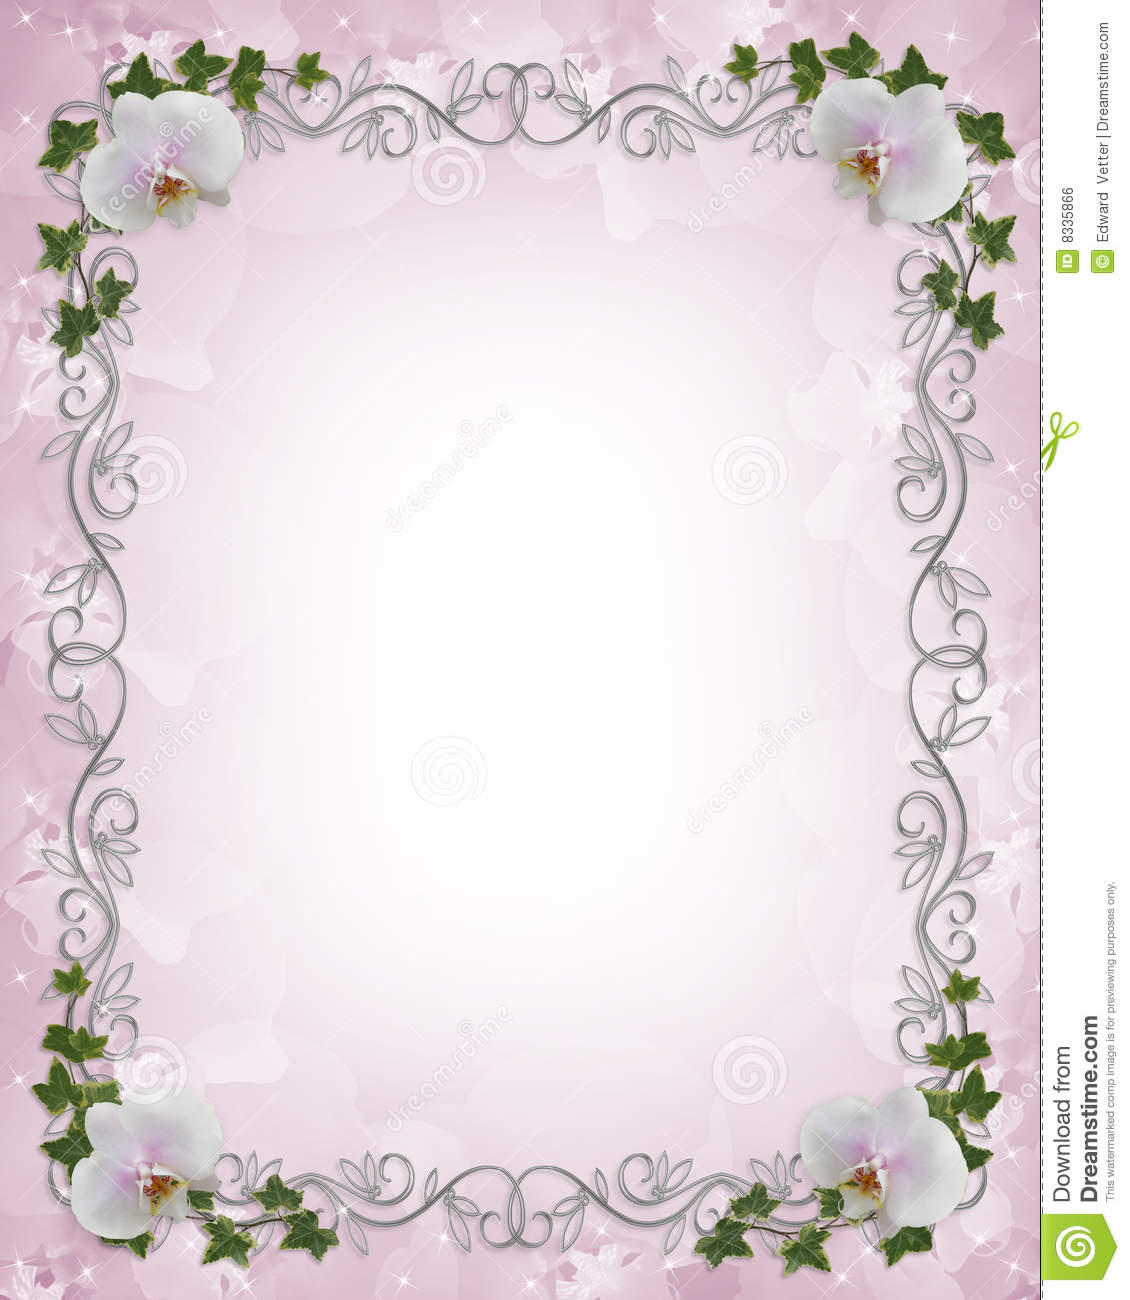 Wedding Invitation Border Orchids Ivy Stock Illustration